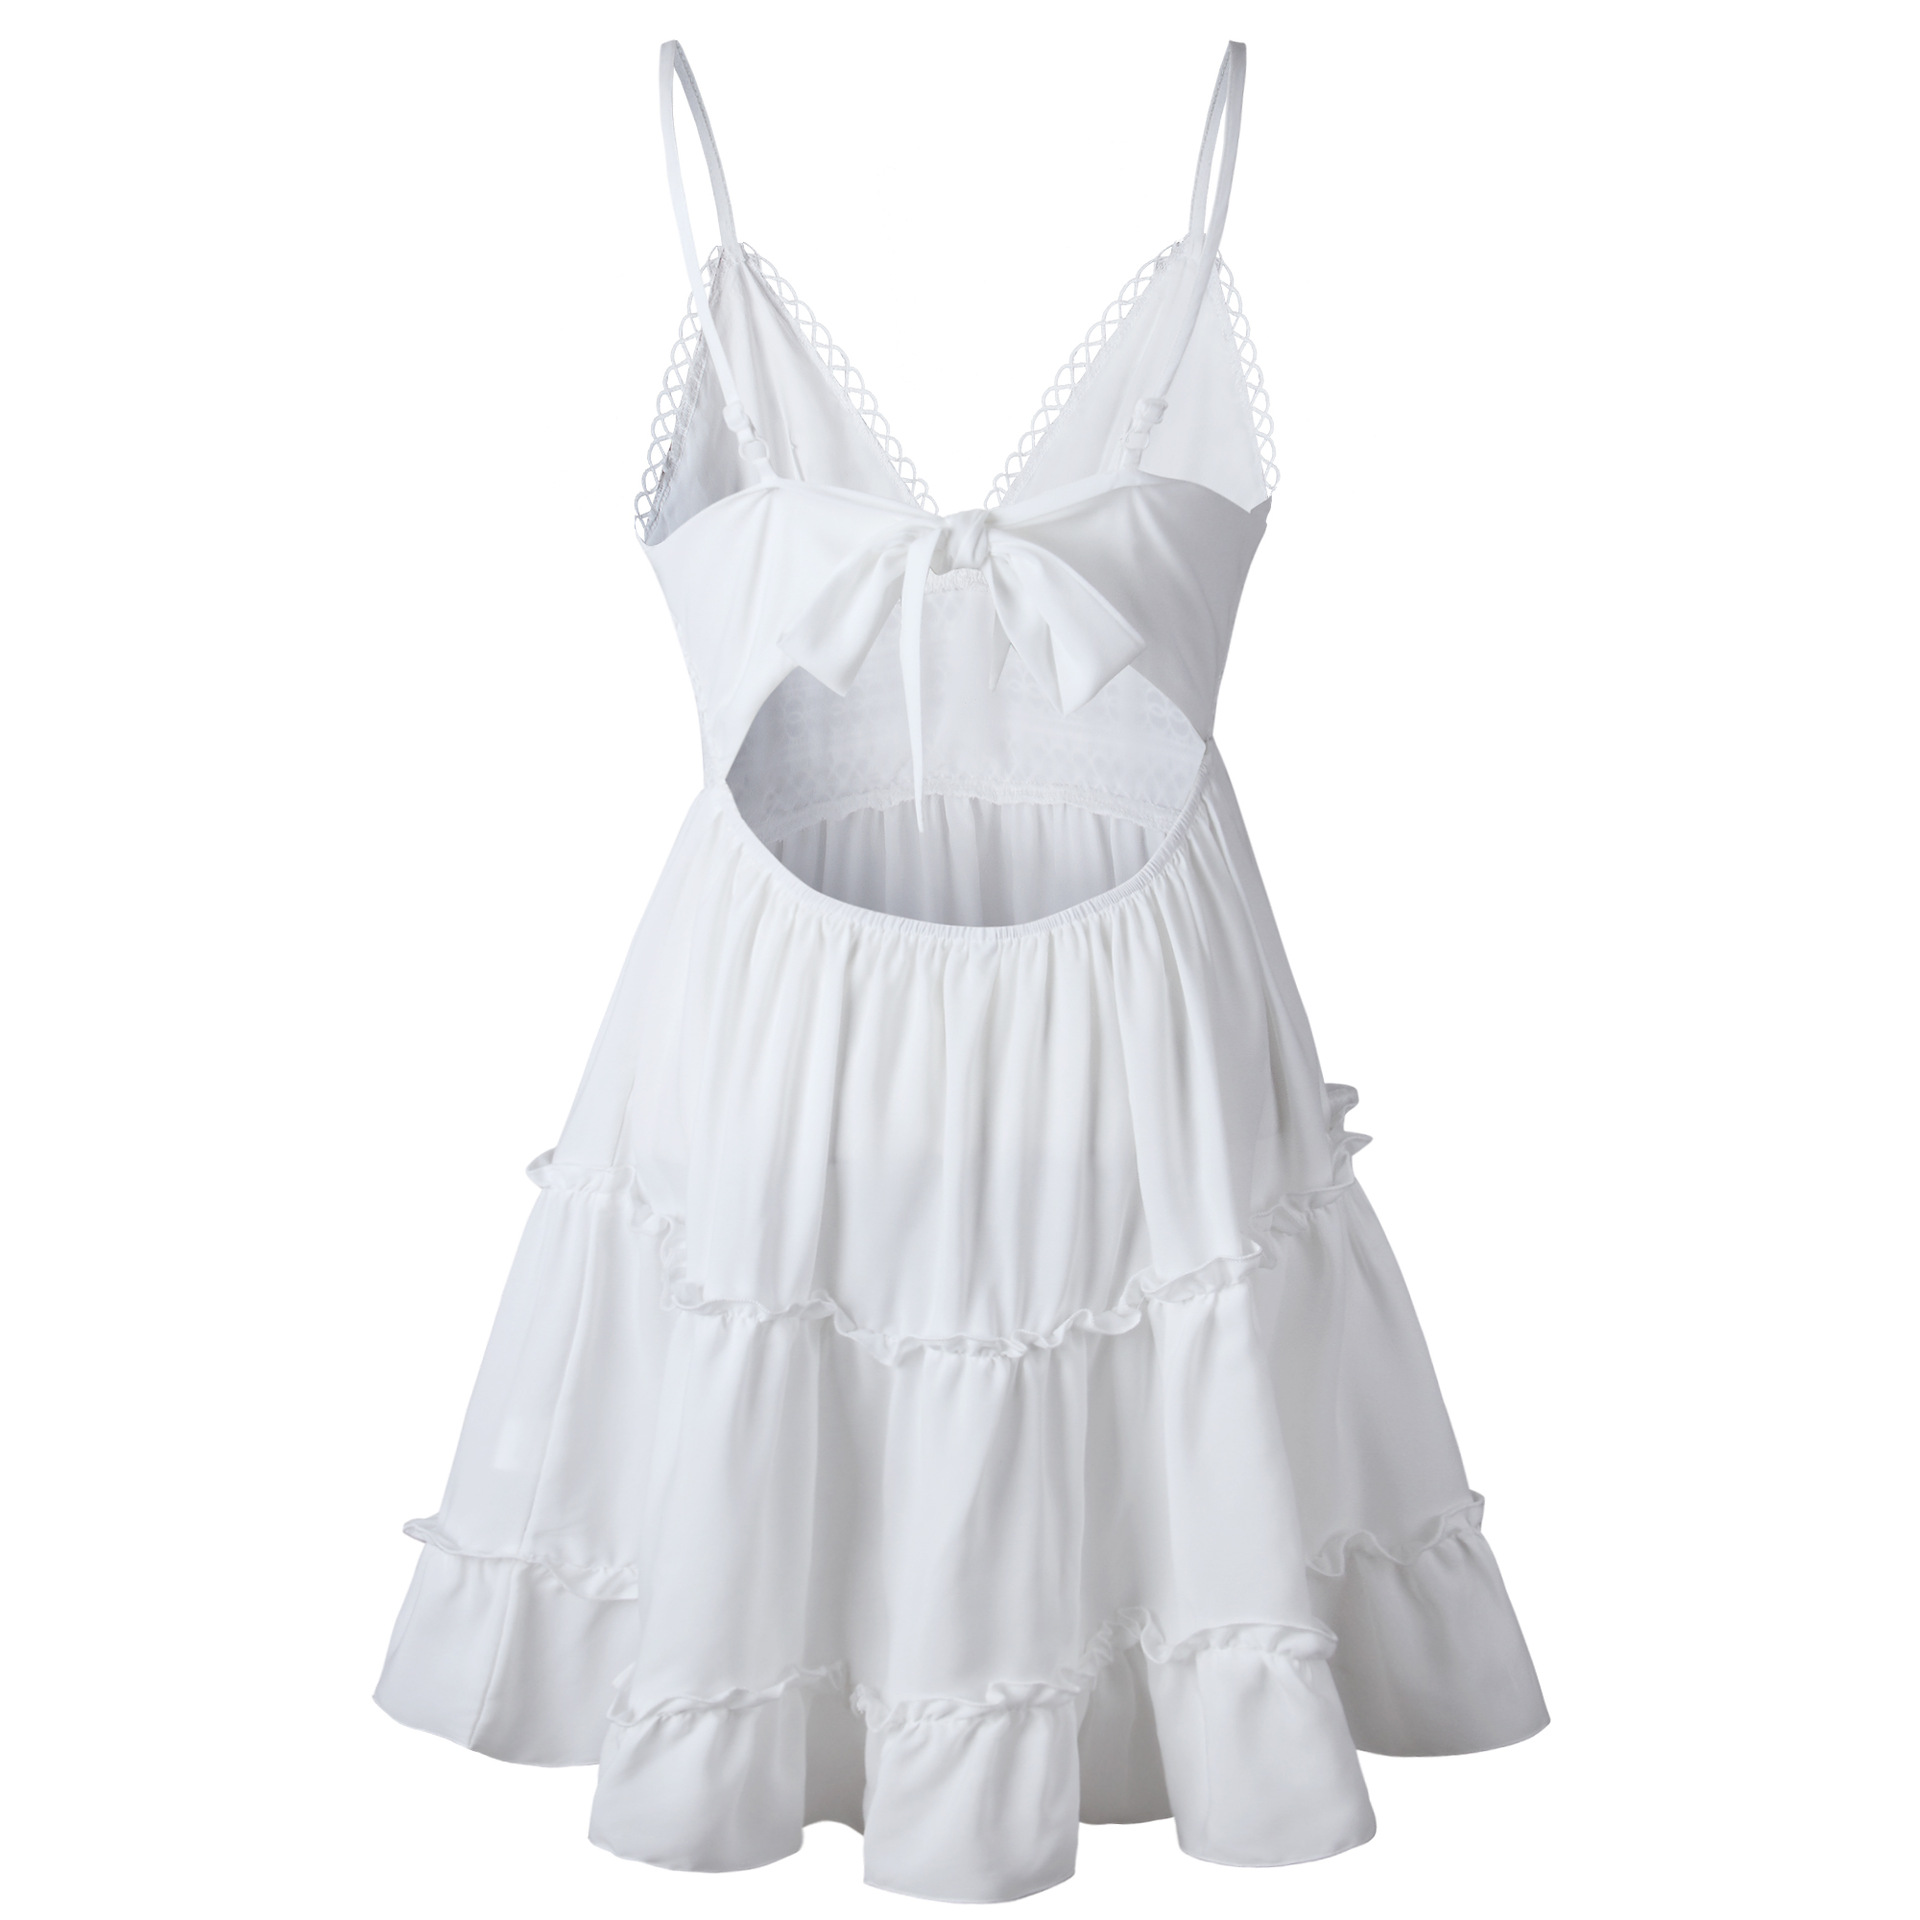 b75c0a822d7a Summer Women Lace Dress Sexy Backless V neck Beach Dresses 2019 Fashion  Sleeveless Spaghetti Strap White Casual Mini Sundress-in Dresses from  Women's ...